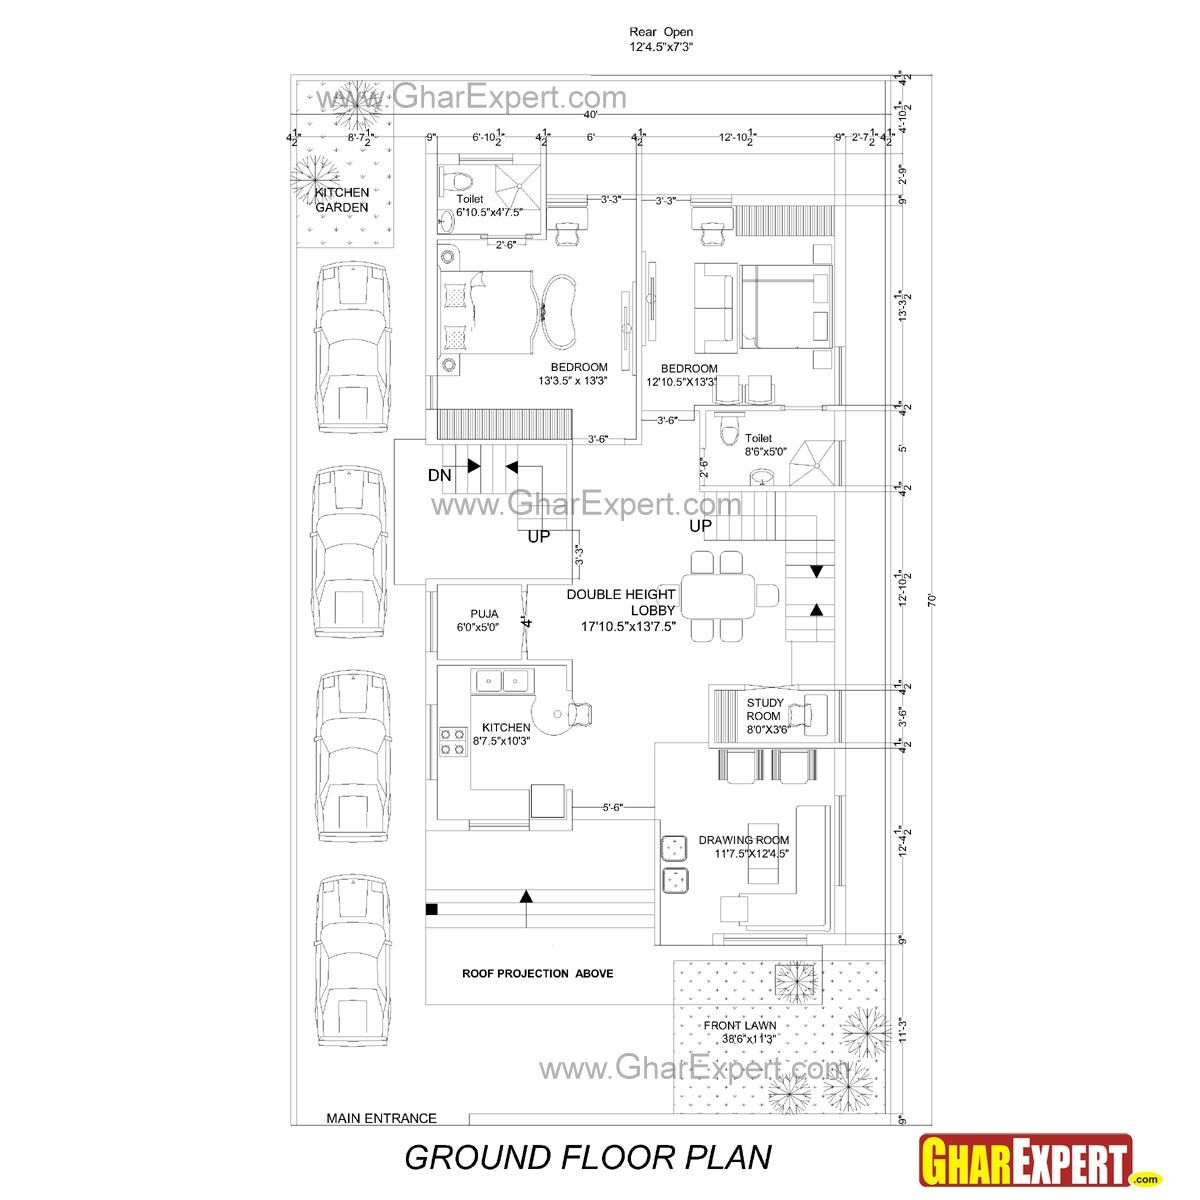 30 X 80 House Plans #2 in 2019 | How to plan, House plans ... Free Bedroom House Design Templates on free text box designs, free house design plans, free house vectors, free house design games, free house design programs, free home design, free house themes, free house powerpoint templates, house plan furniture templates, free house clipart, free house drawing, blueprint house free templates, free house search, free house you move, free room planning template, free house logo design,